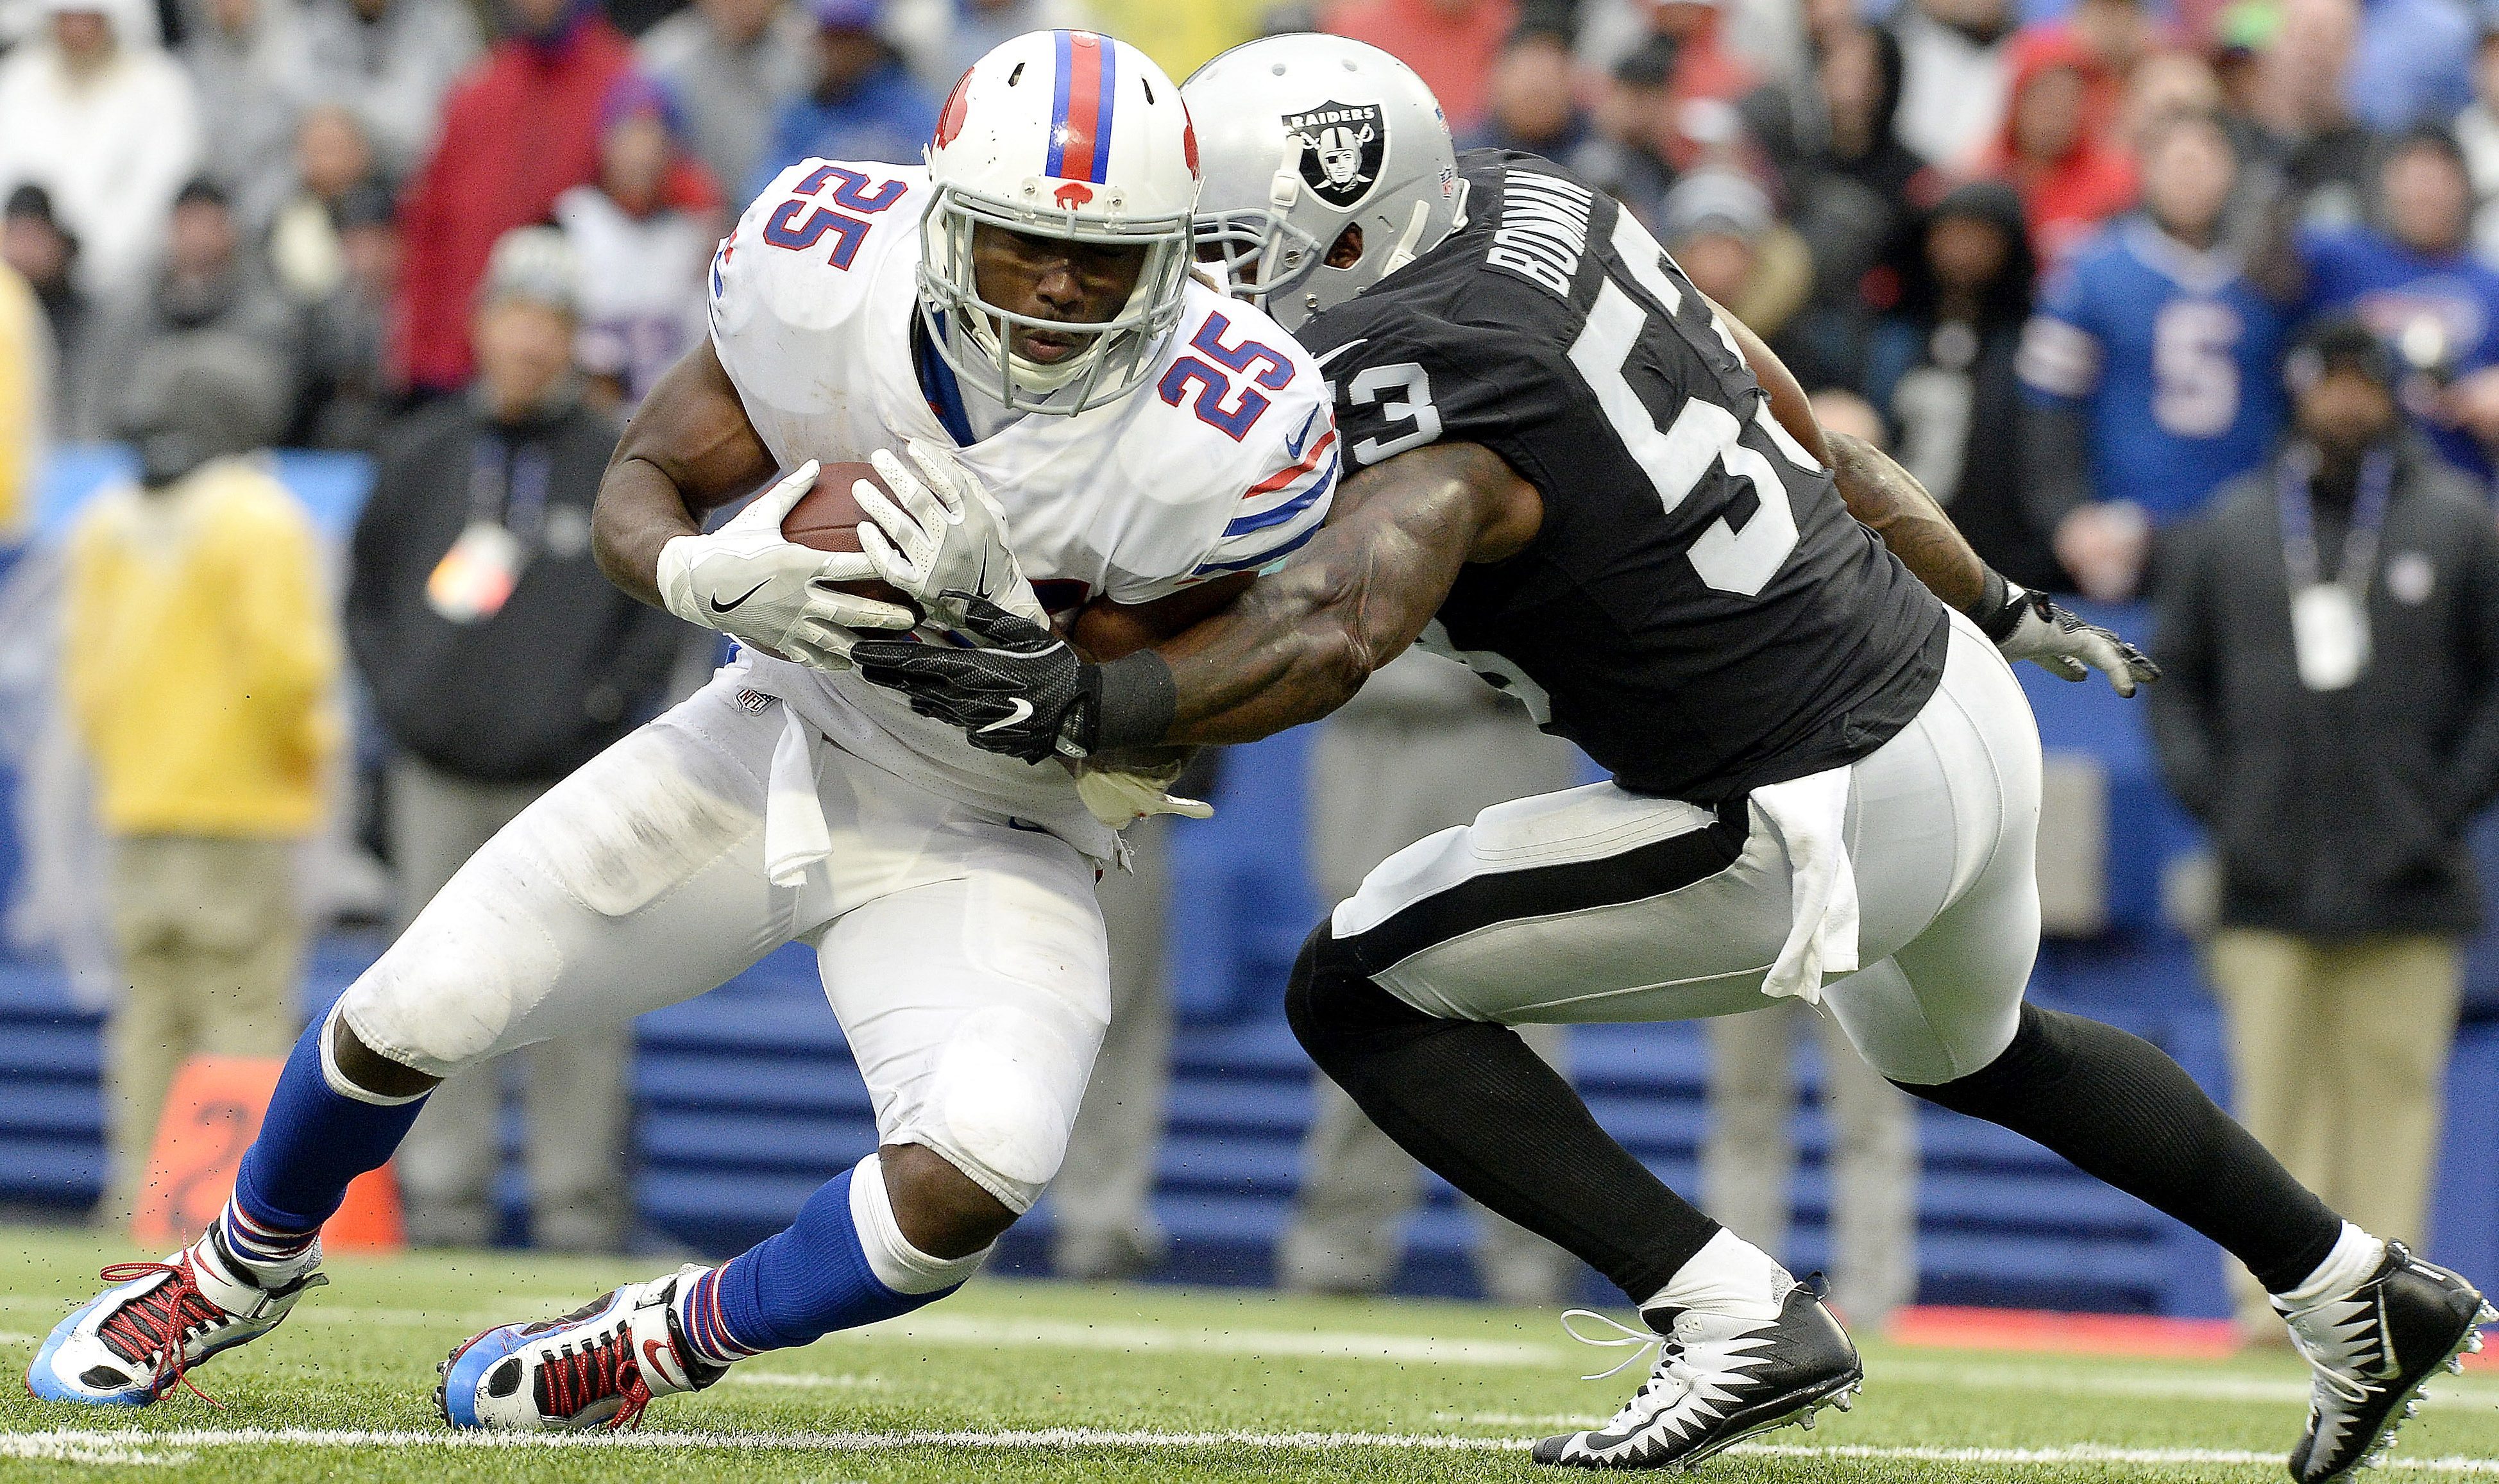 Buffalo Bills running back LeSean McCoy (25) is tackled by Oakland Raiders middle linebacker NaVorro Bowman (53) during the second half of an NFL football game, Sunday, Oct. 29, 2017, in Orchard Park, N.J. (AP Photo/Adrian Kraus)